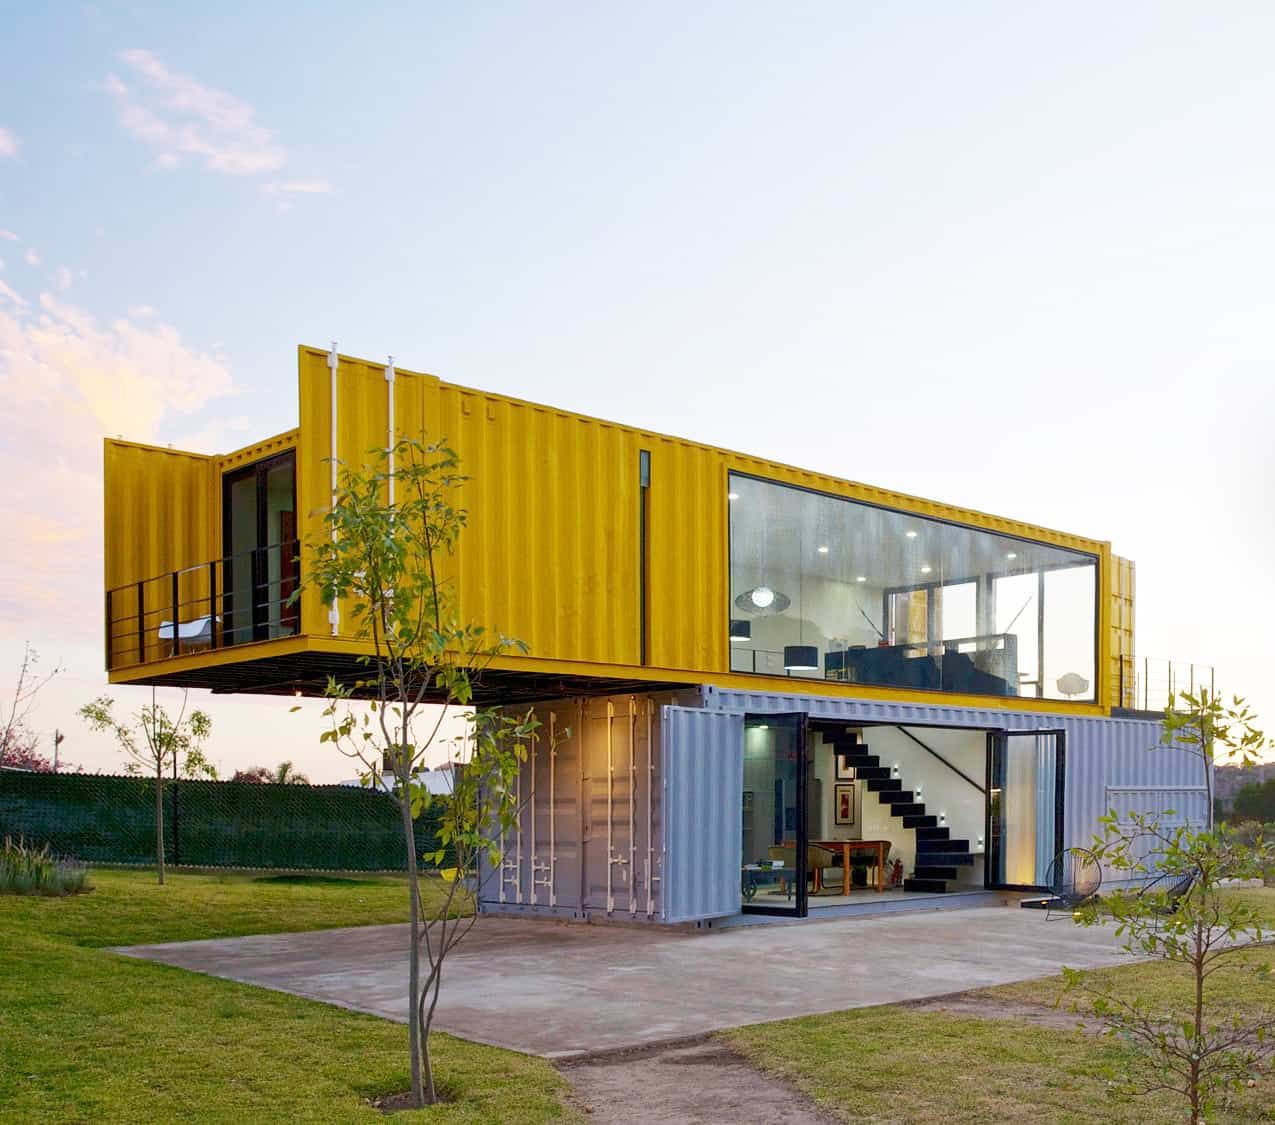 4 Shipping Containers Prefab Plus 1 For Guests